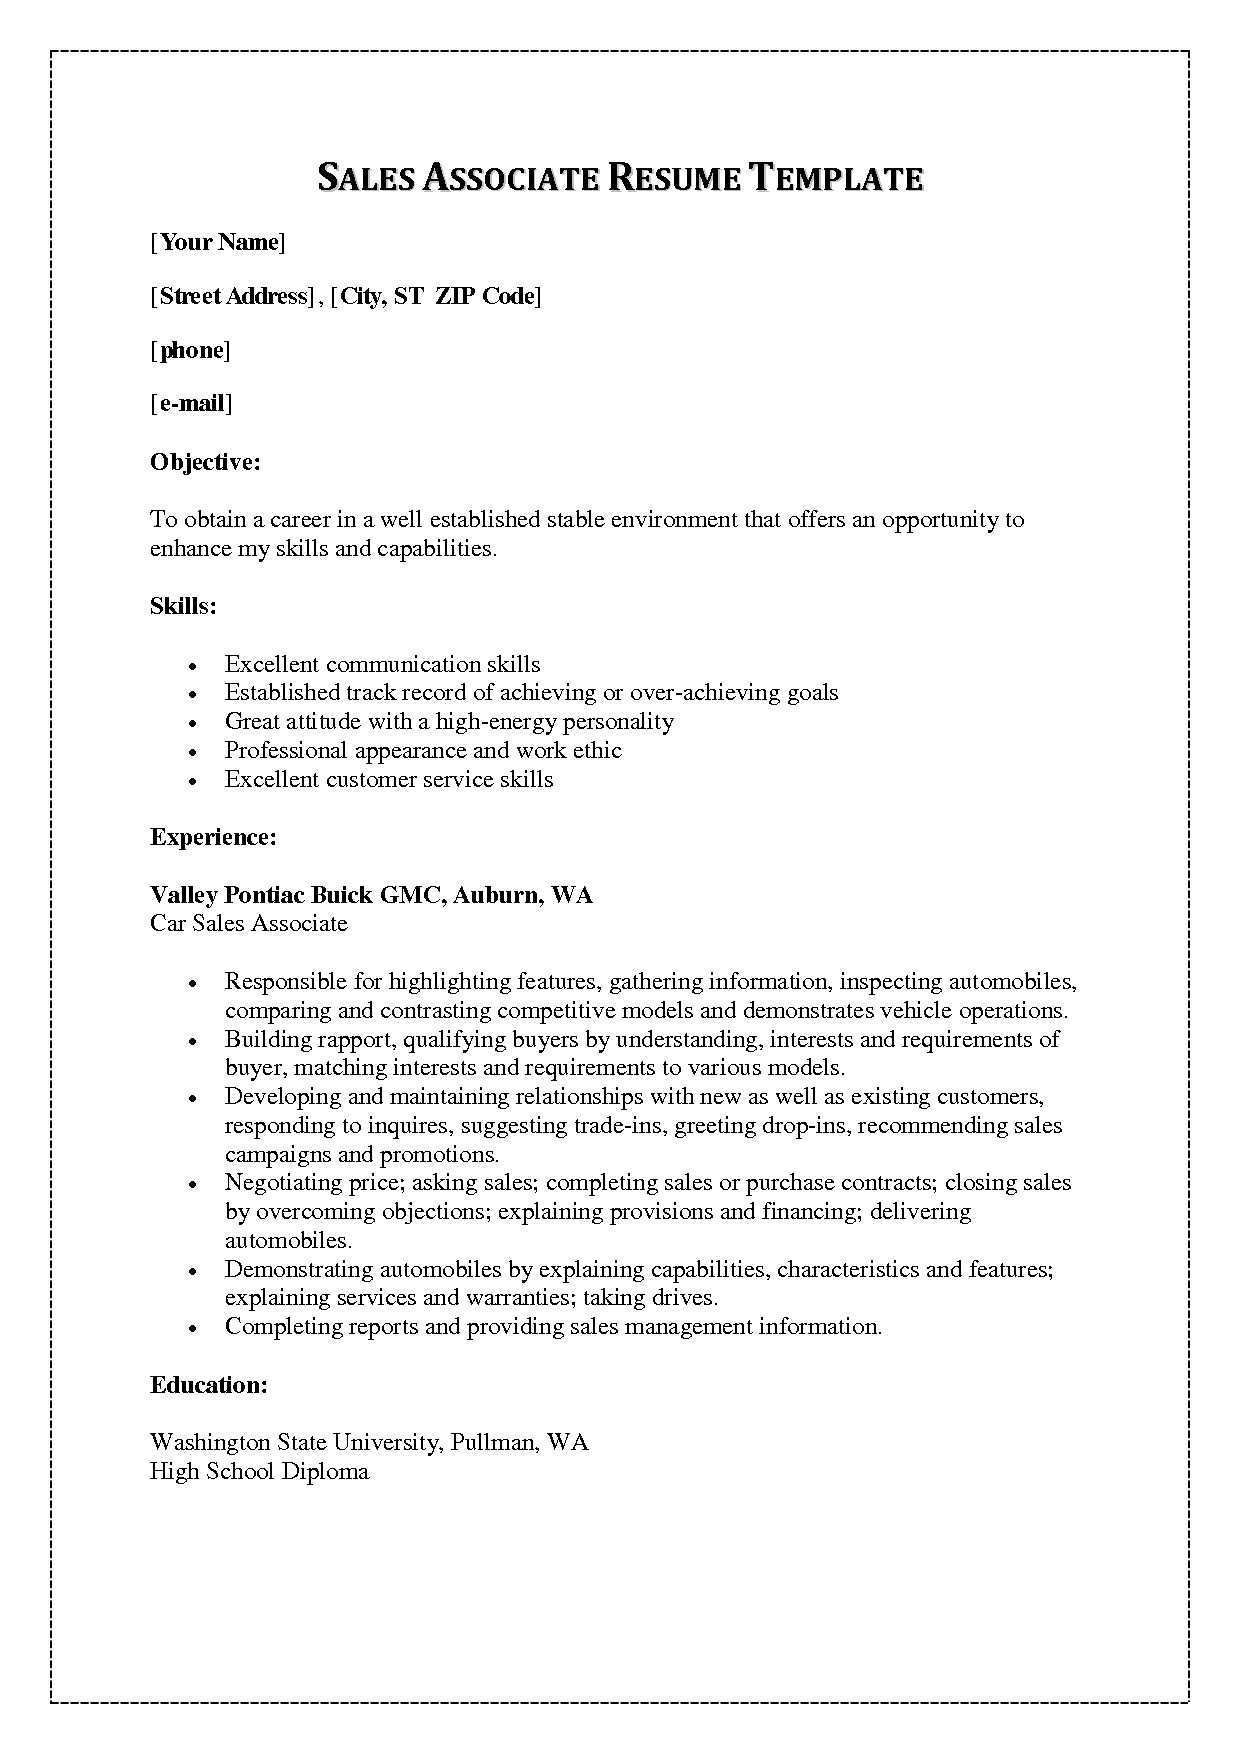 65 Best Of Images Of Good Examples Of Skills And Abilities For Resume Sales Resume Examples Resume Sales Resume